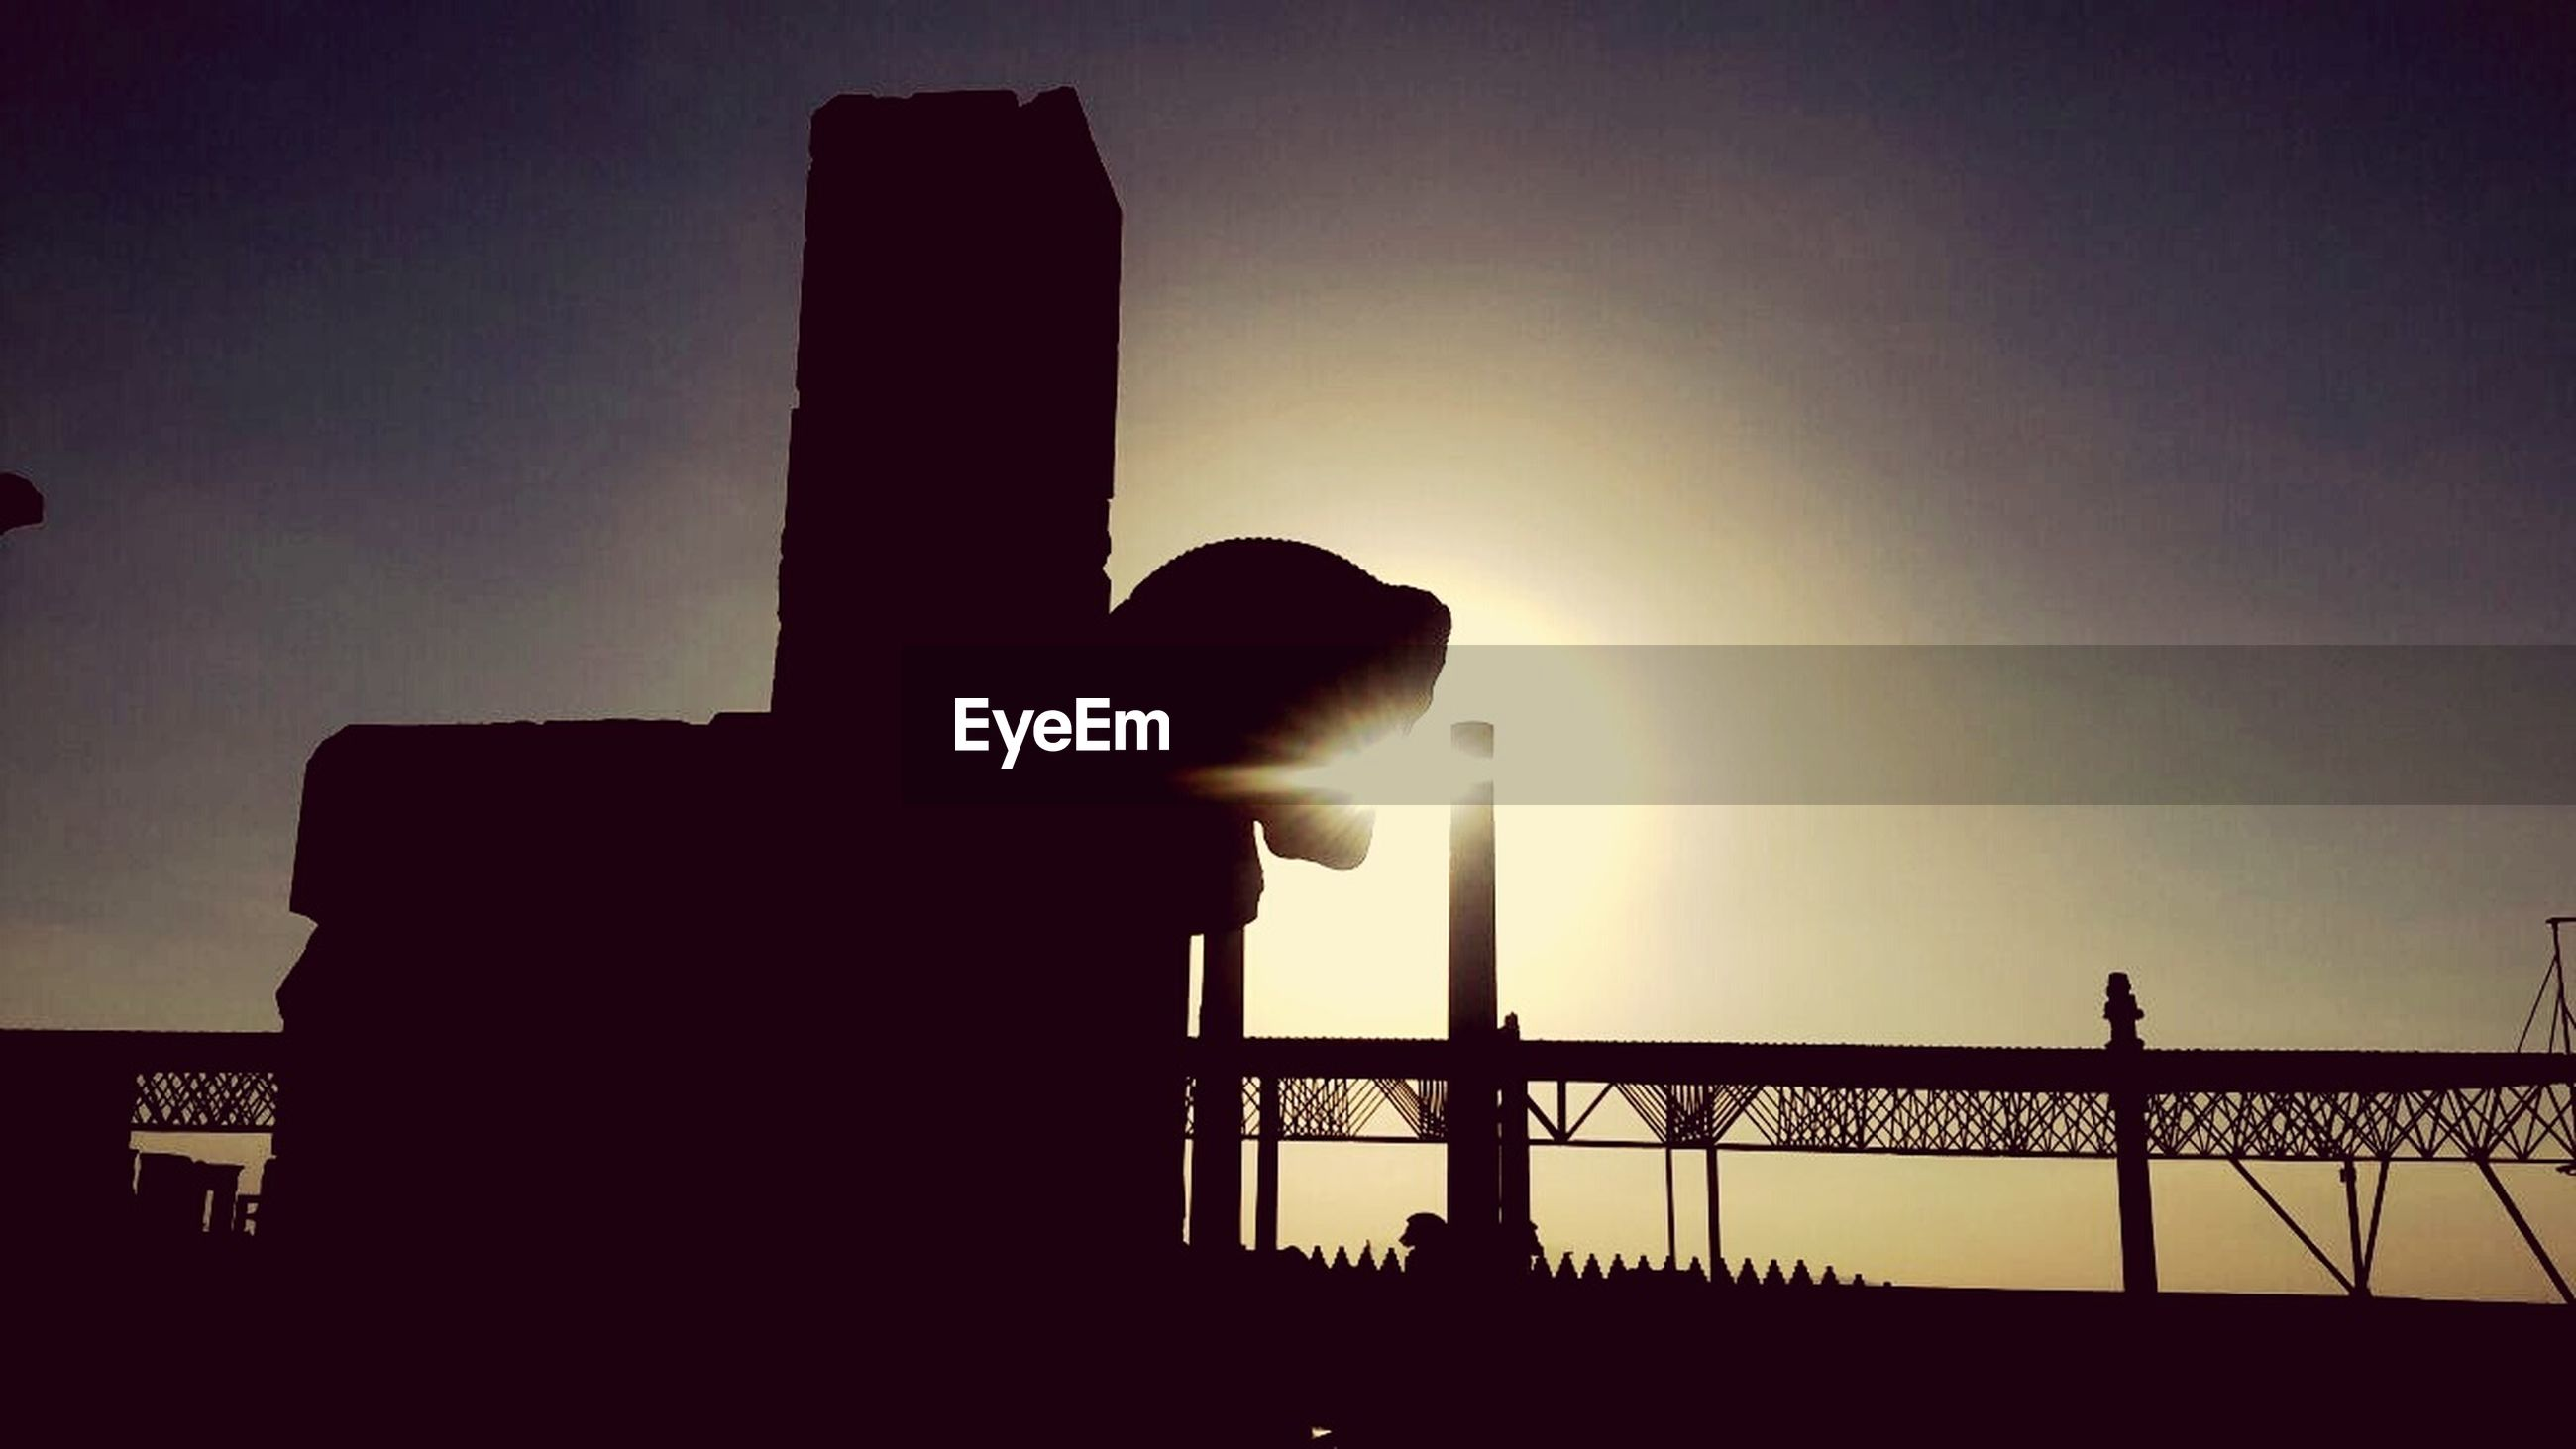 silhouette, built structure, sunset, architecture, low angle view, building exterior, sky, sun, clear sky, copy space, street light, dusk, outline, city, outdoors, building, sunlight, no people, dark, tower